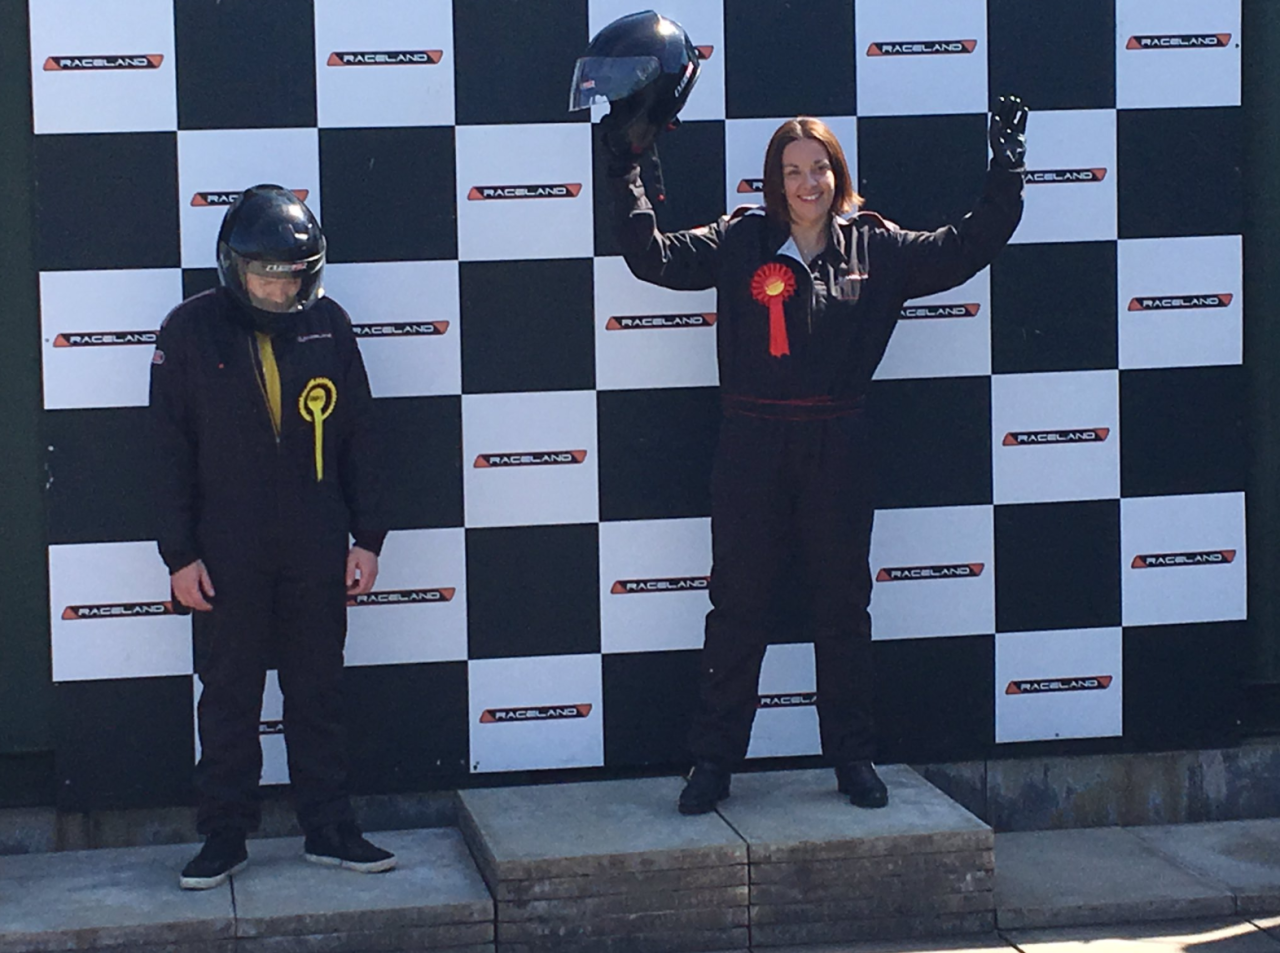 <p>In a flimsy attempt to emphasise the fact that her party is in 'pole position' in East Lothian, leader of the Scottish Labour Party persuaded a poor lacky to wear SNP colours and let her win at go-karting. </p>